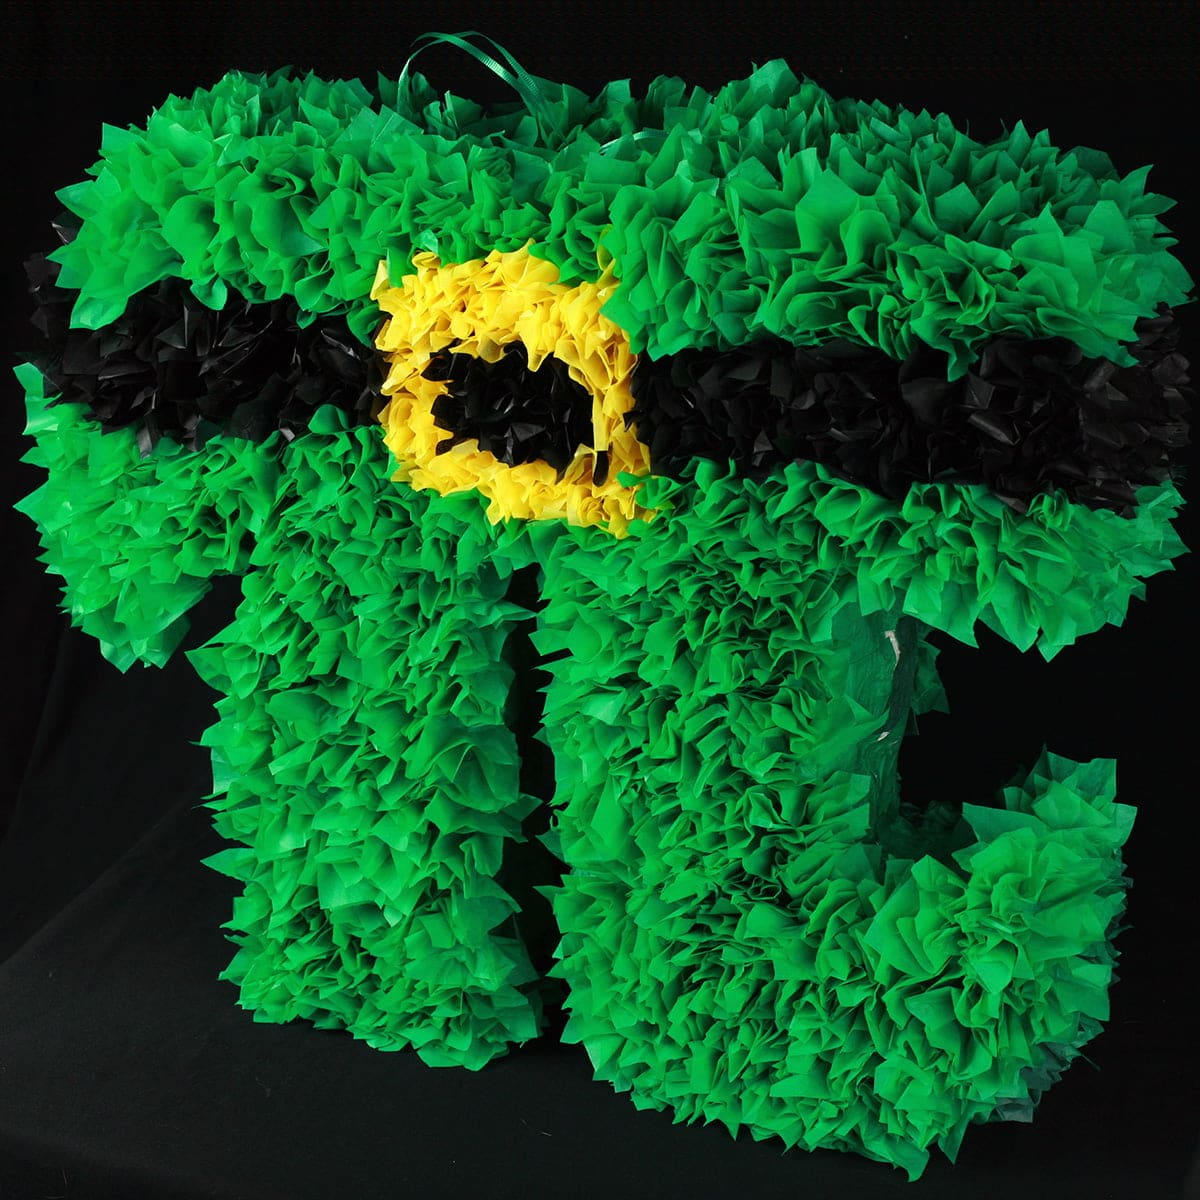 A bright green pi symbol-shaped pinata, against a black background.